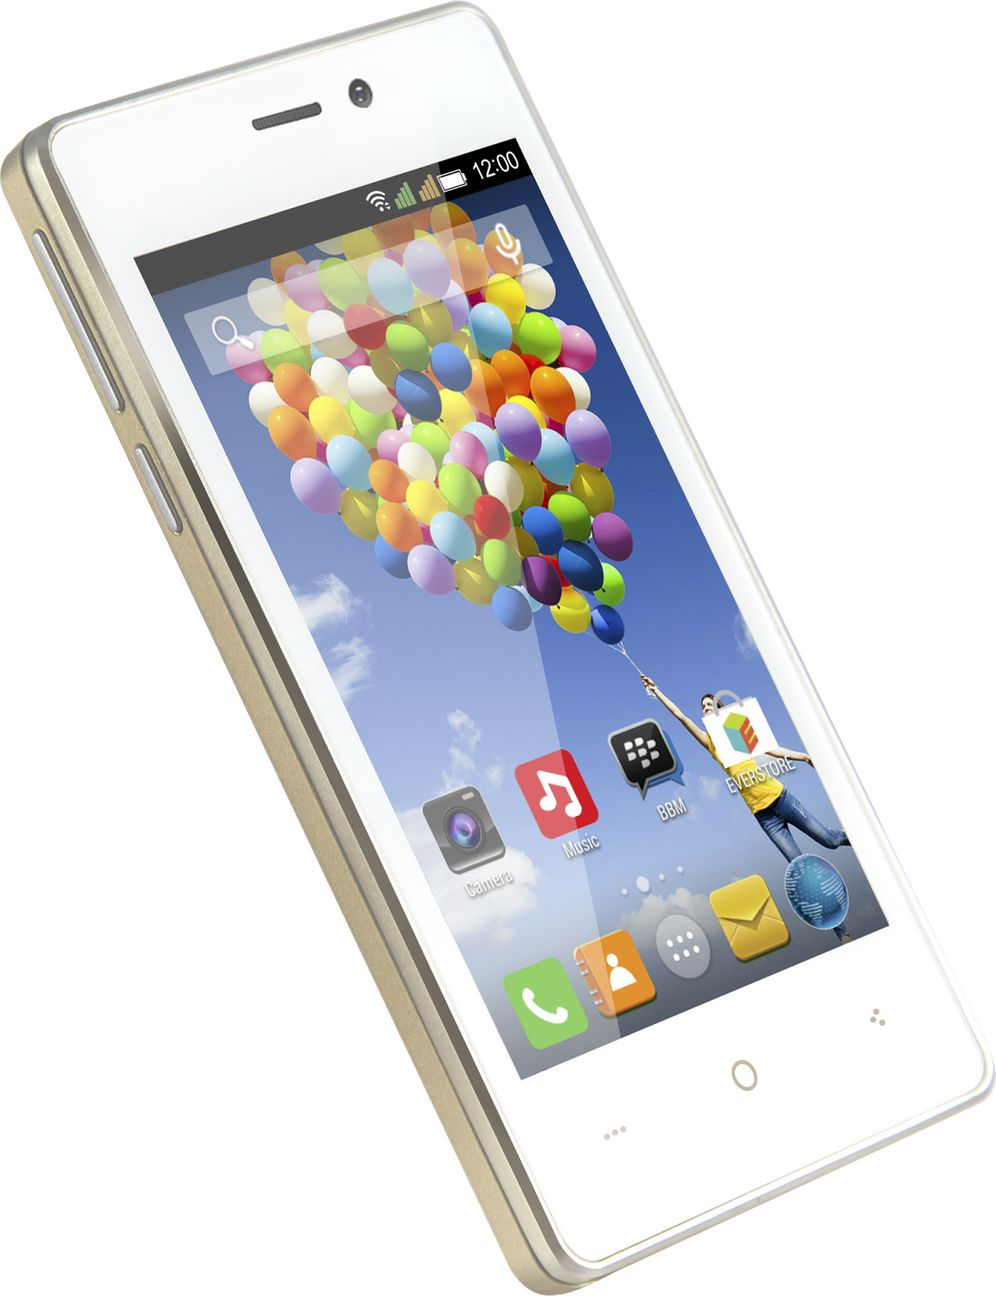 Evercoss Winner T A74A HP Android 4 Inchi RAM 1 GB